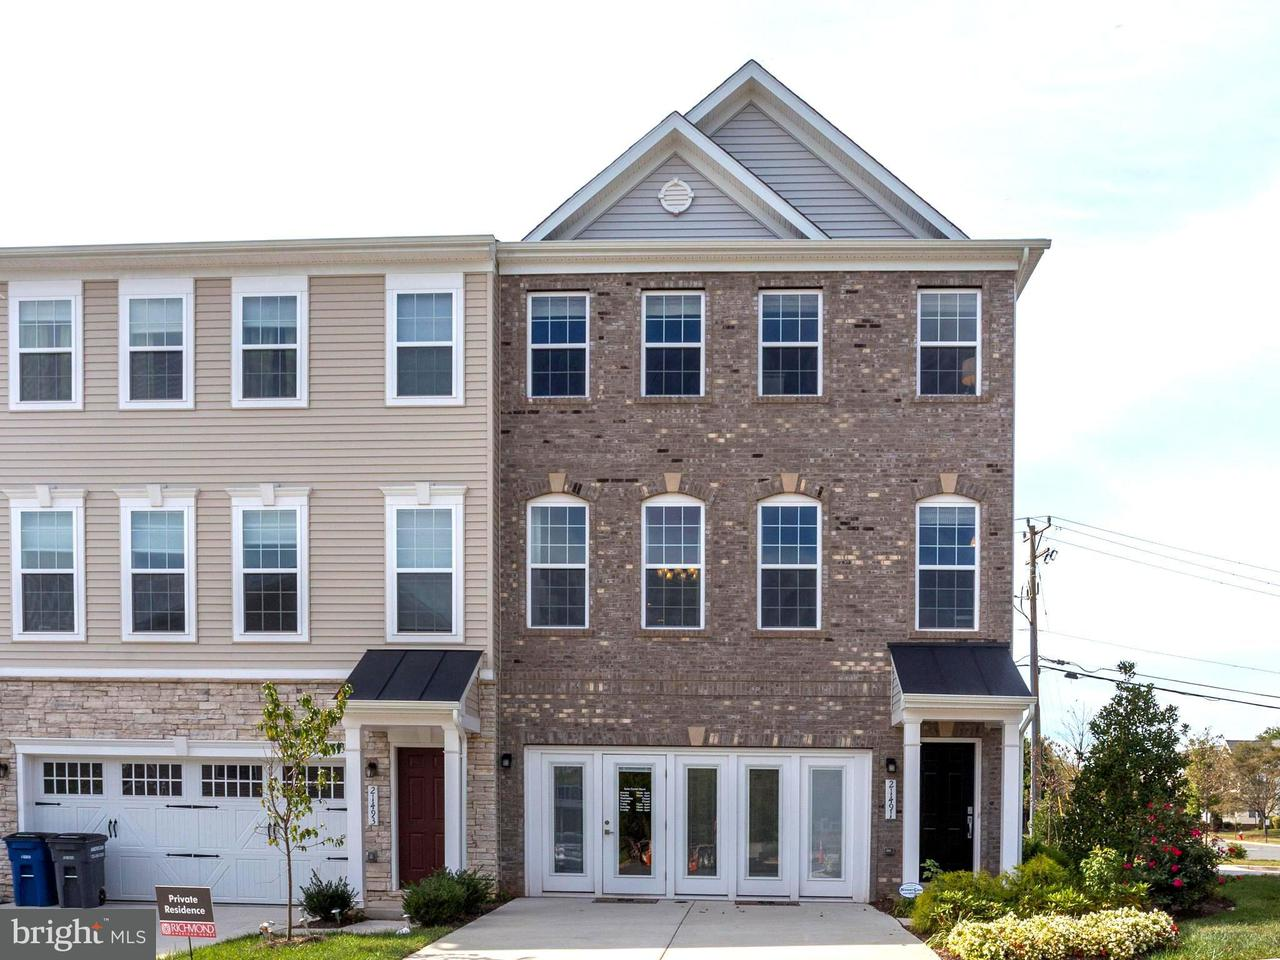 Townhouse for Sale at 21491 WILLOW BREEZE SQ 21491 WILLOW BREEZE SQ Ashburn, Virginia 20147 United States